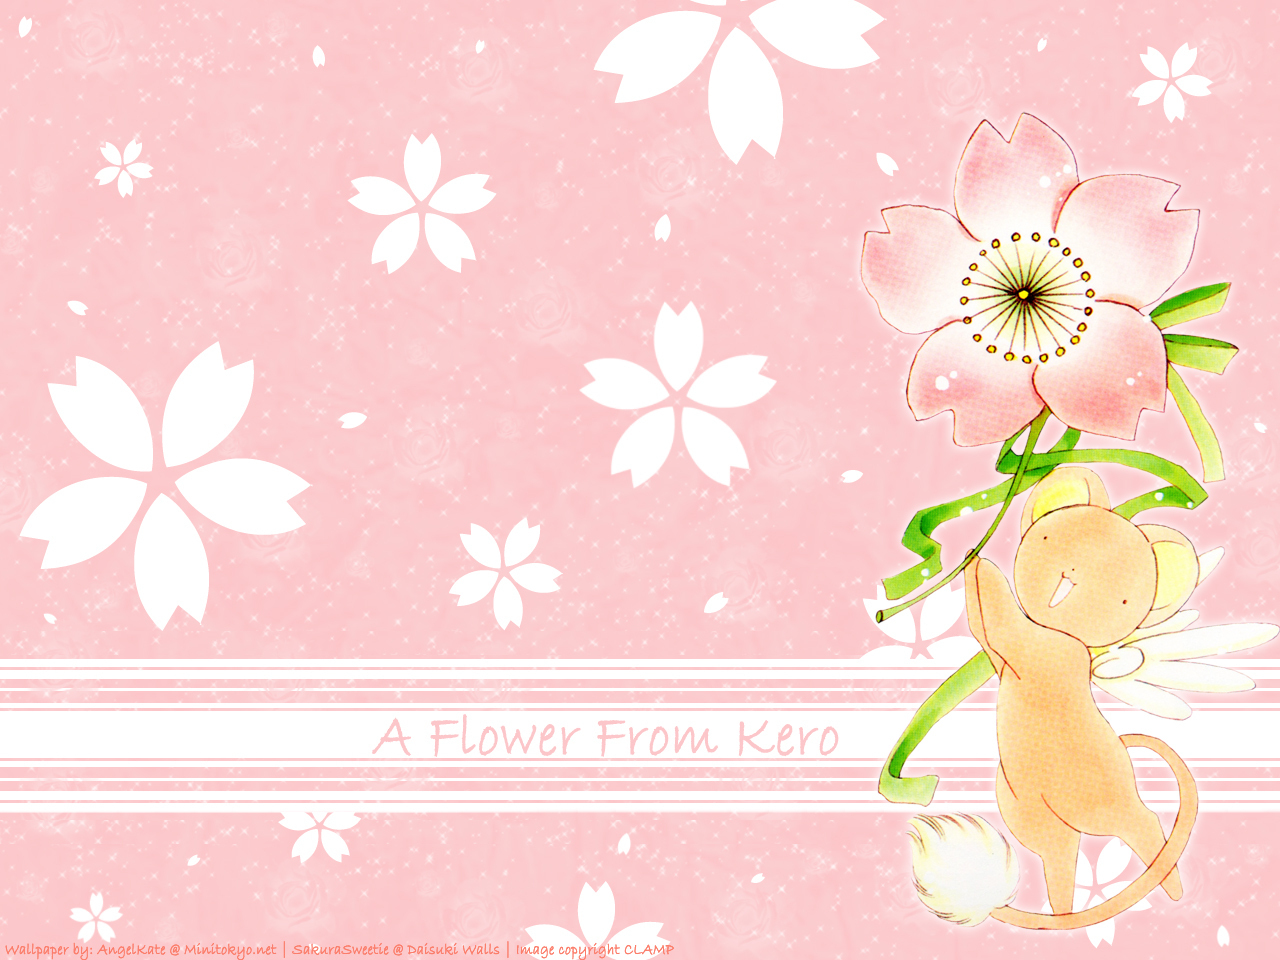 Cardcaptor Sakura Images A Flower From Kero Hd Wallpaper And